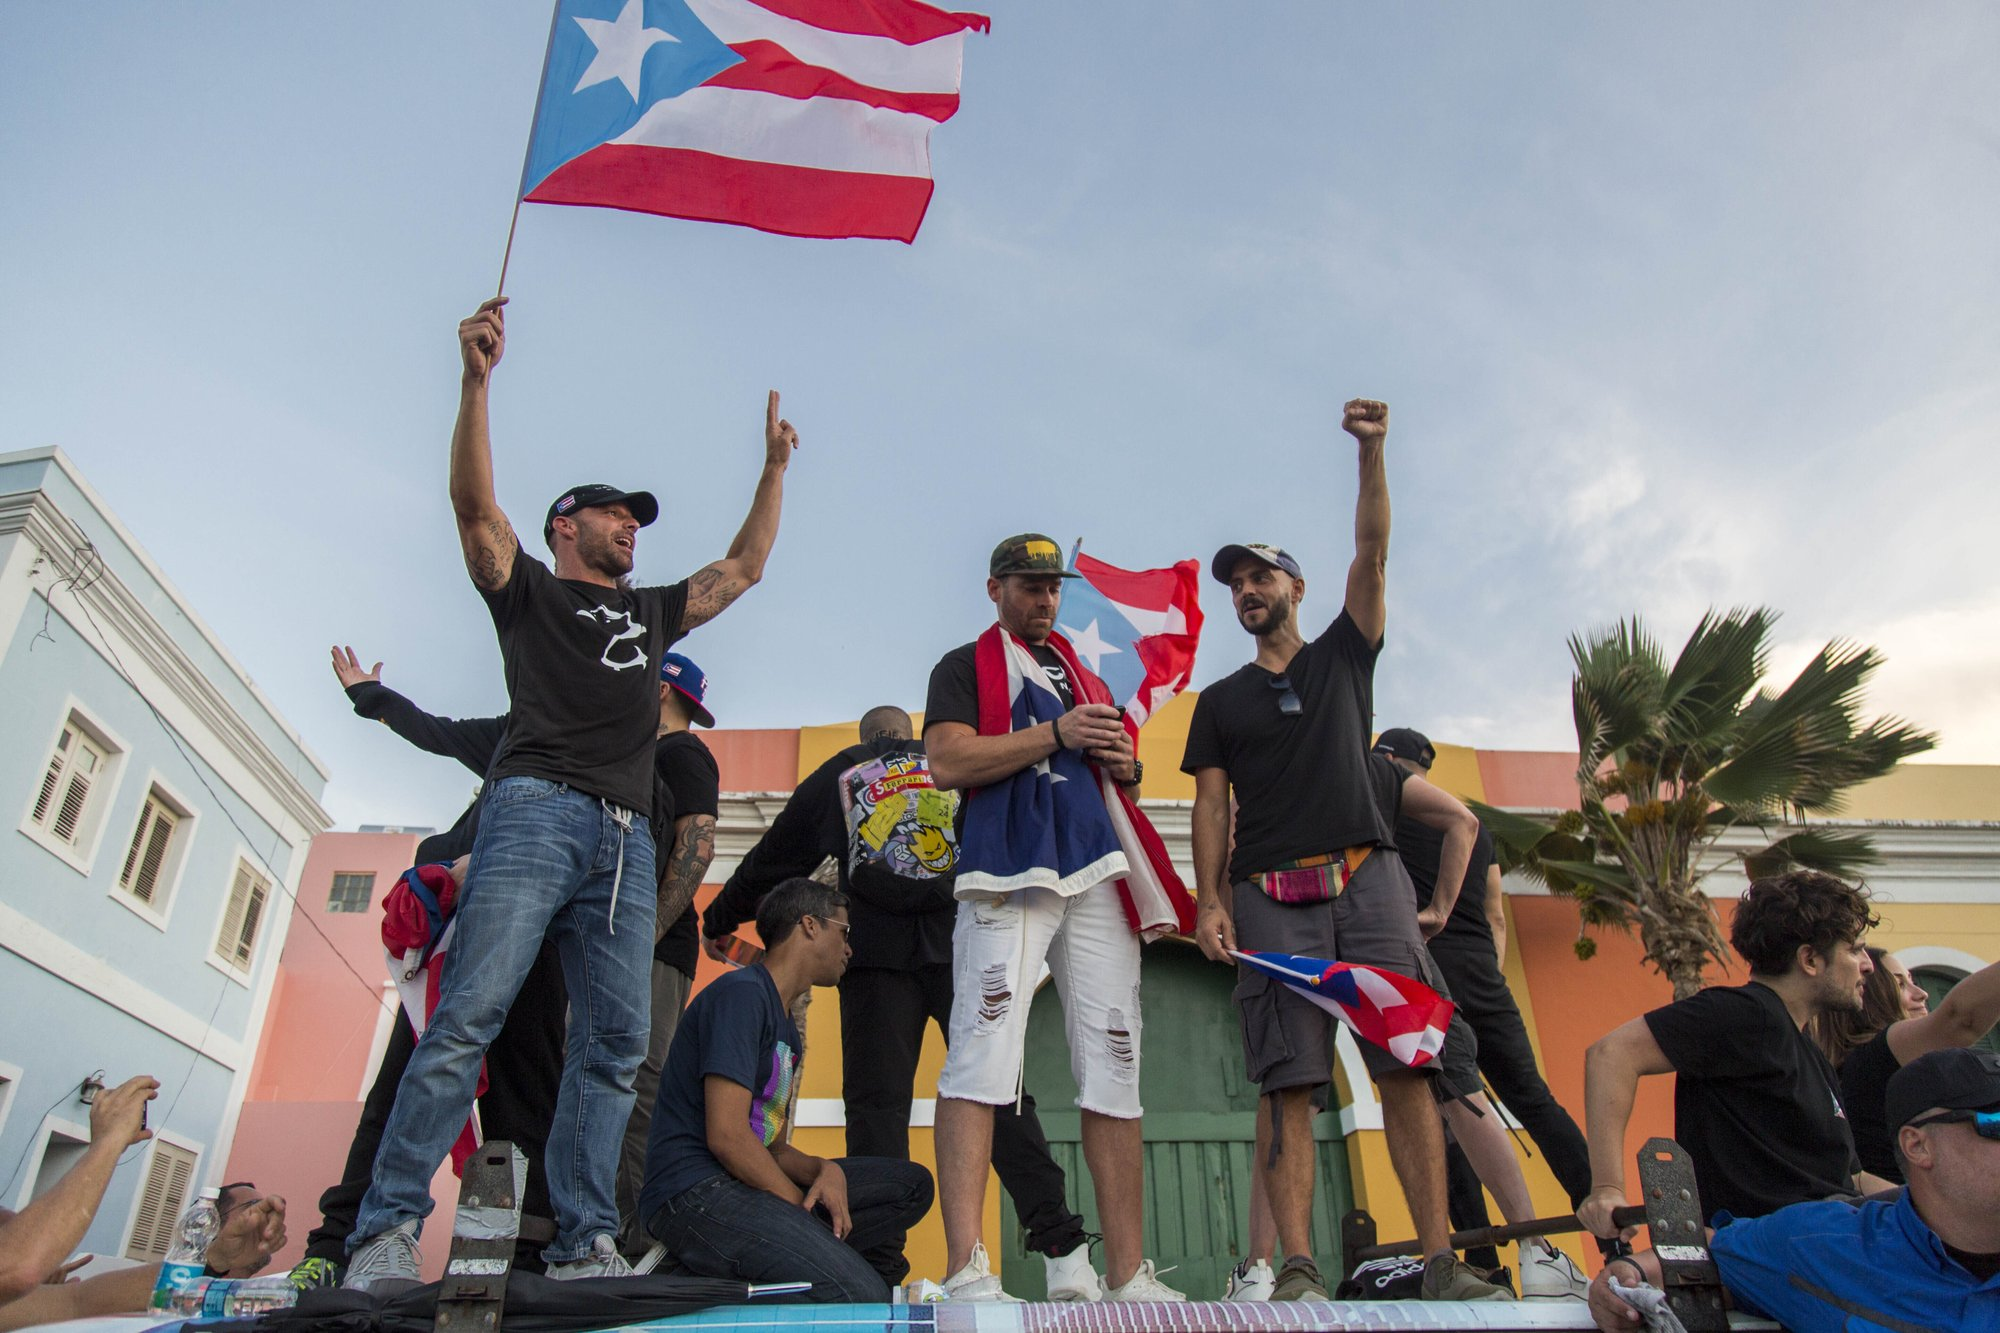 Fed-up Puerto Ricans march demanding governor resign